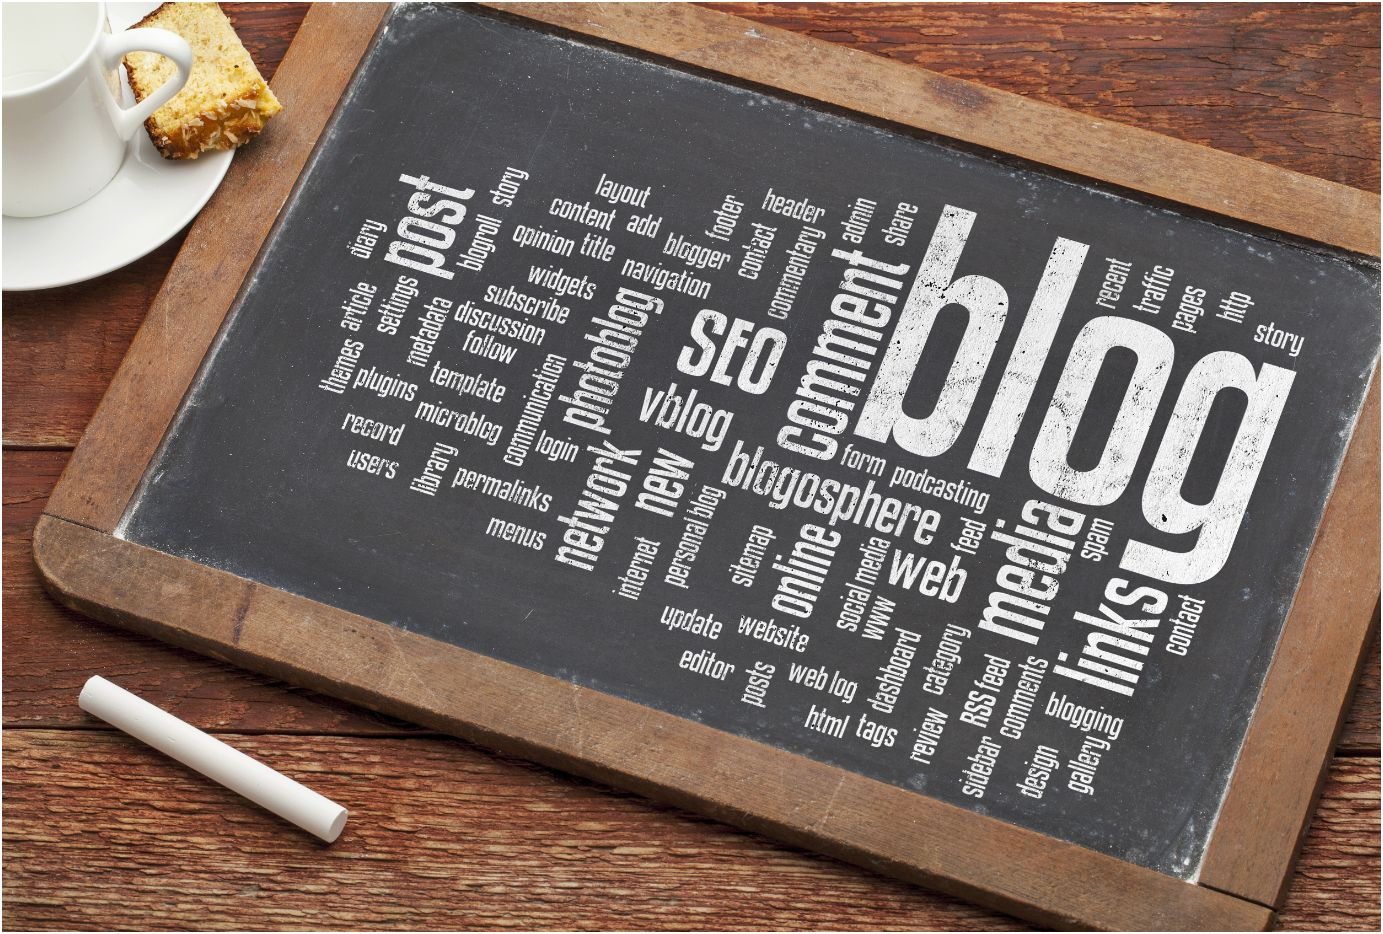 Blogging is an ongoing effort. Photo courtesy Shutterstock.